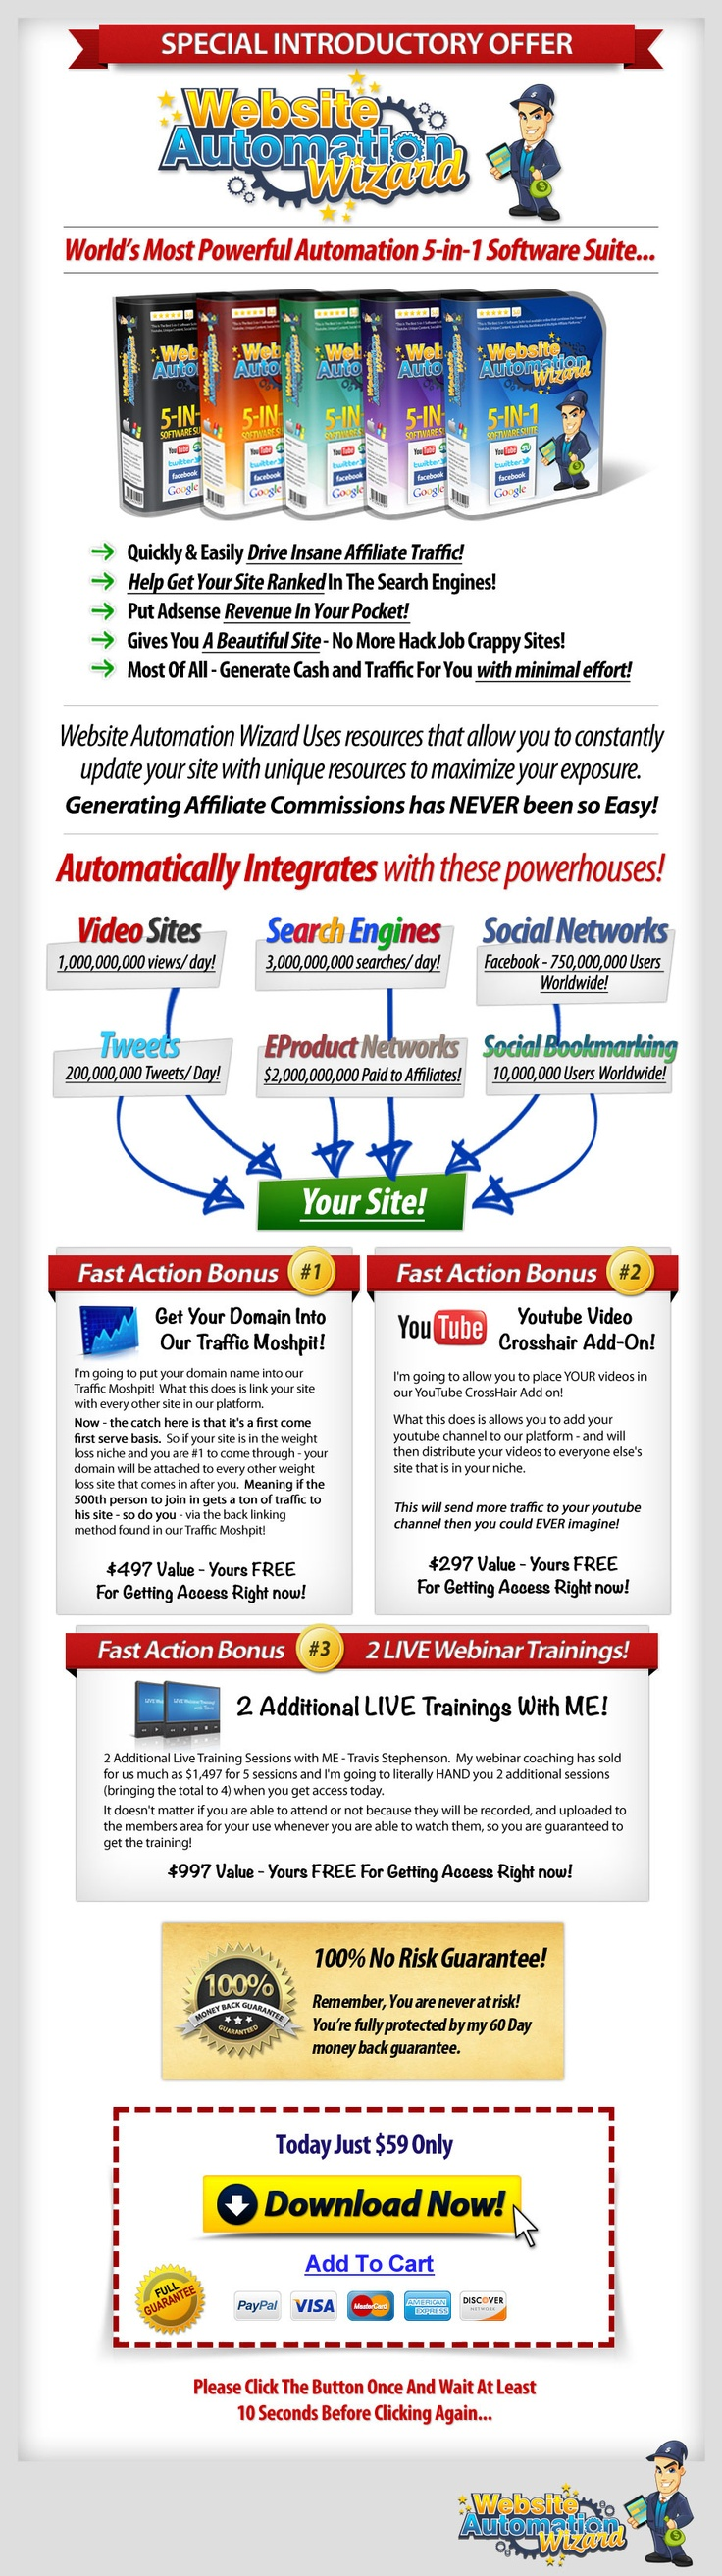 http://pprobizint99.sitemoxie.com Website Automation Wizard Make Money Fast Online Using WP Plugin.